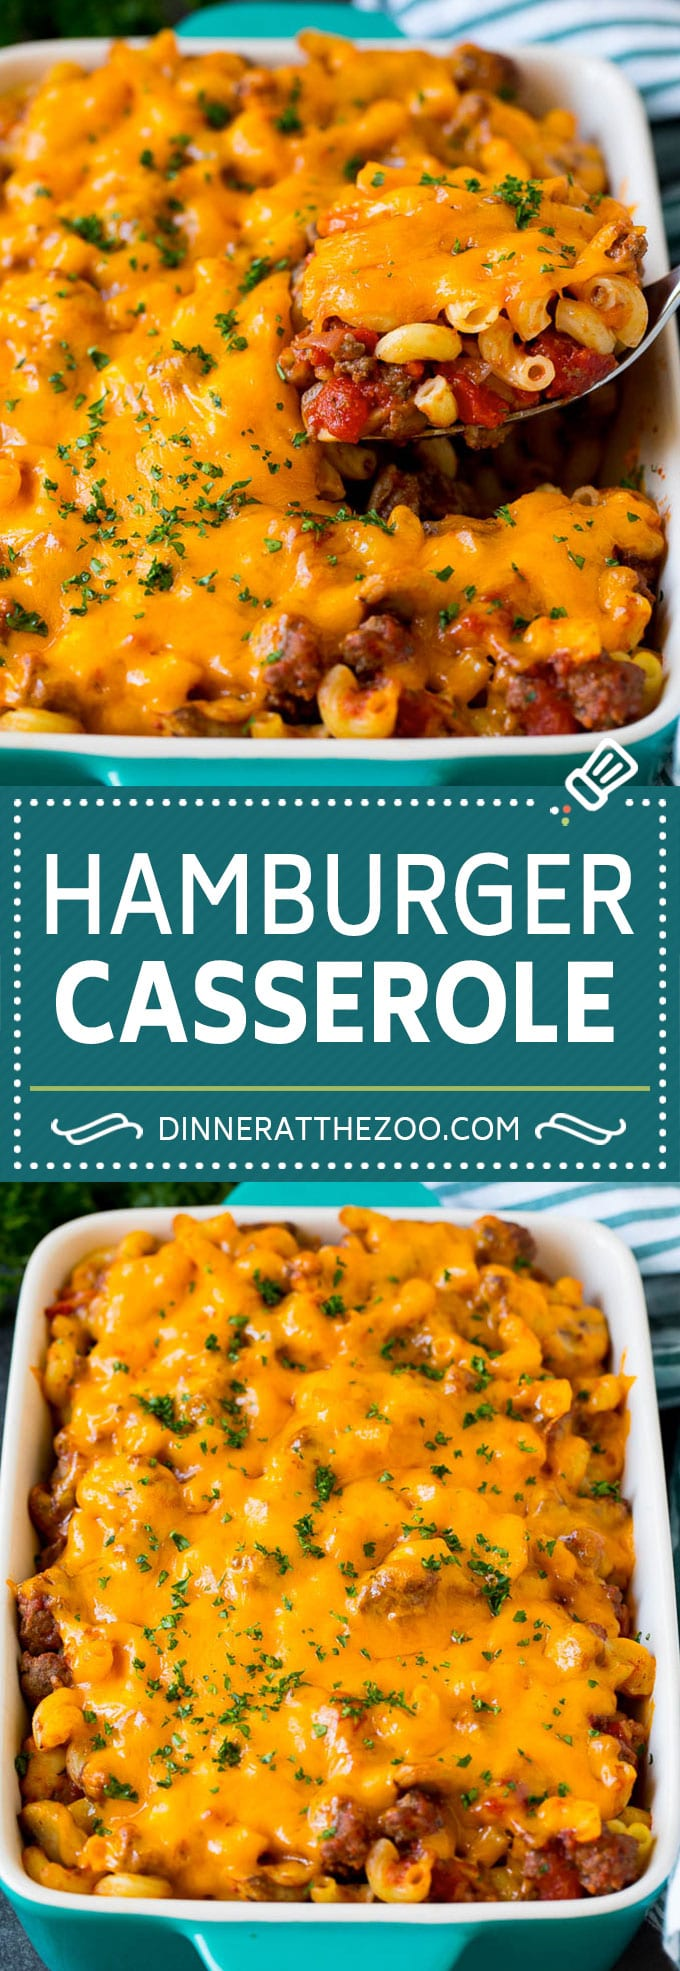 This hamburger casserole is ground beef and mushrooms in tomato sauce, tossed with pasta and topped with melted cheese.